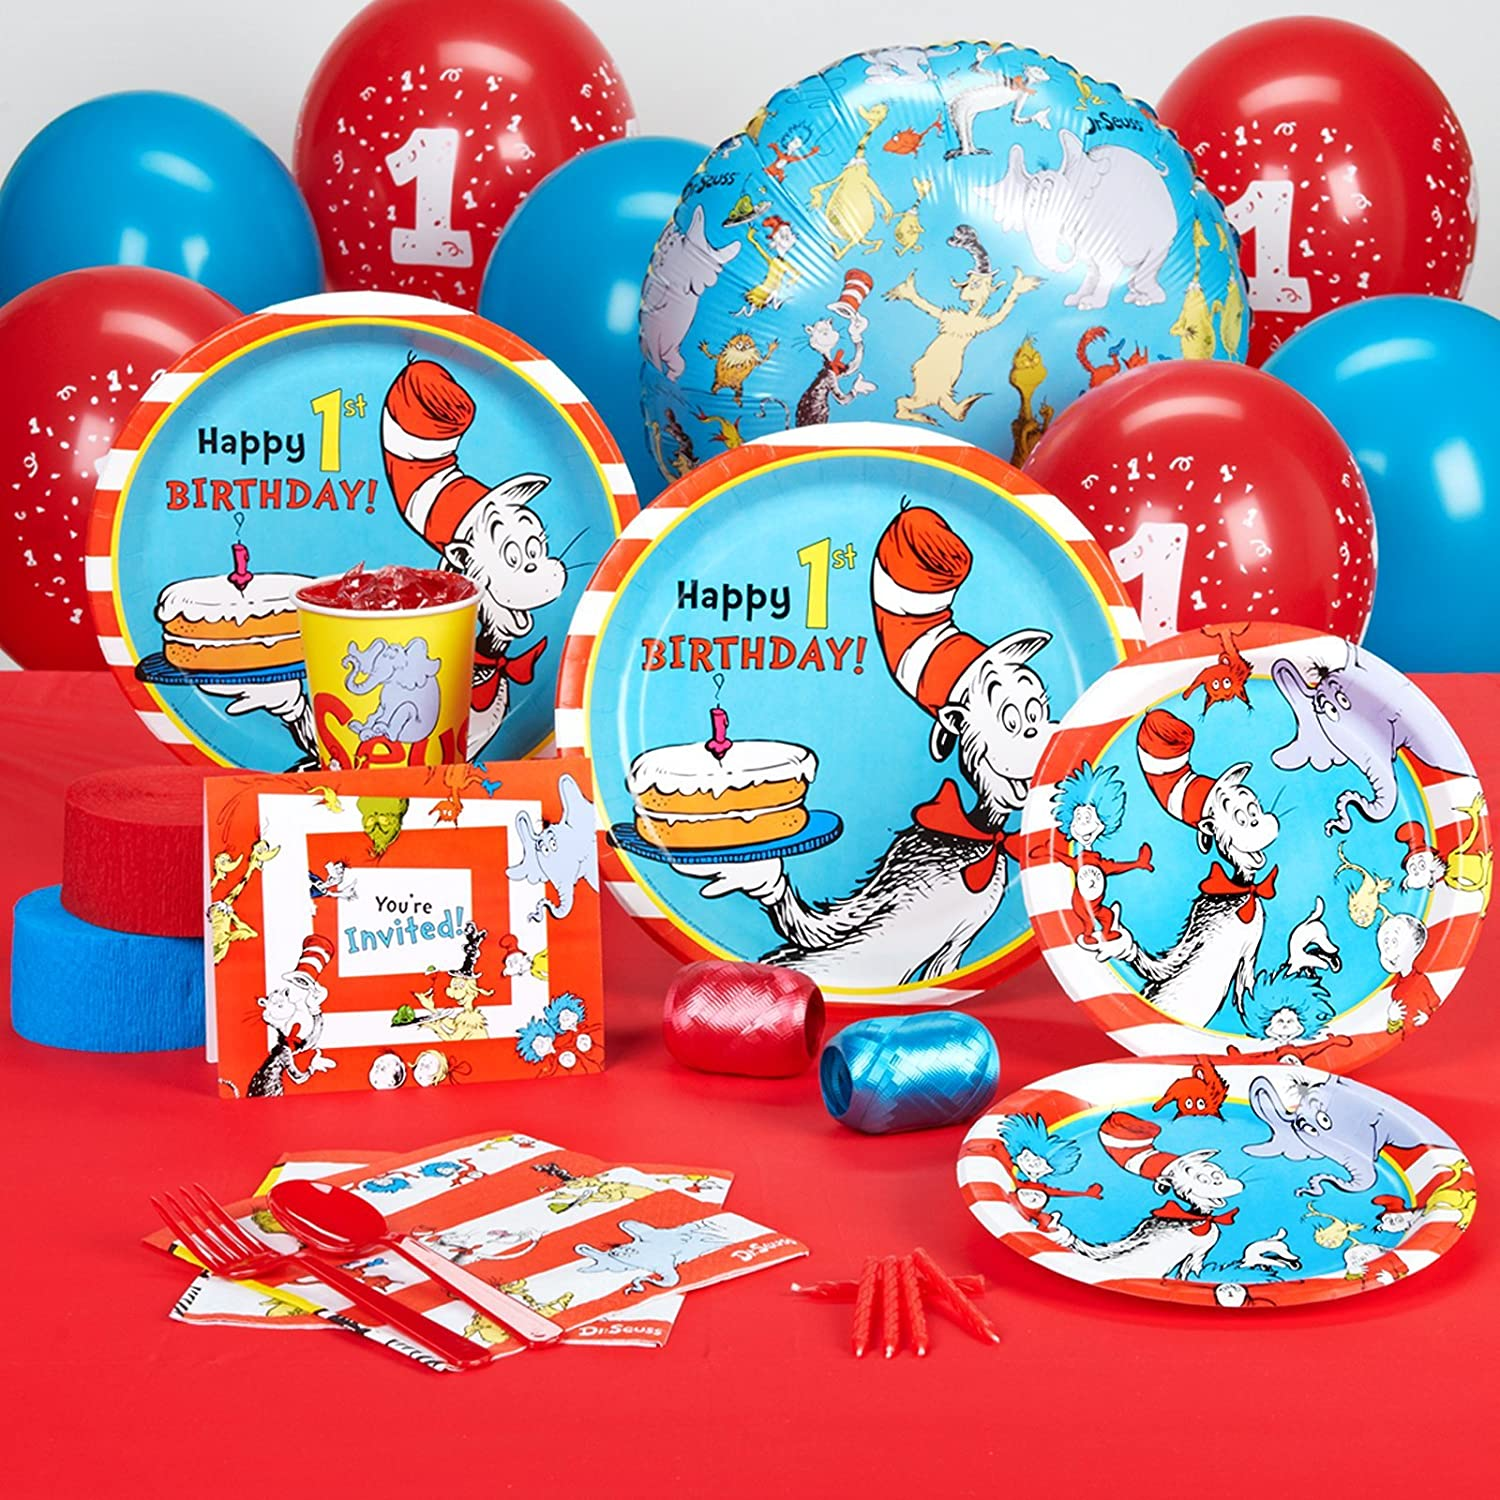 Dr Seuss Party Decorations Amazoncom Dr Seuss 1st Birthday Party Supplies Standard Party